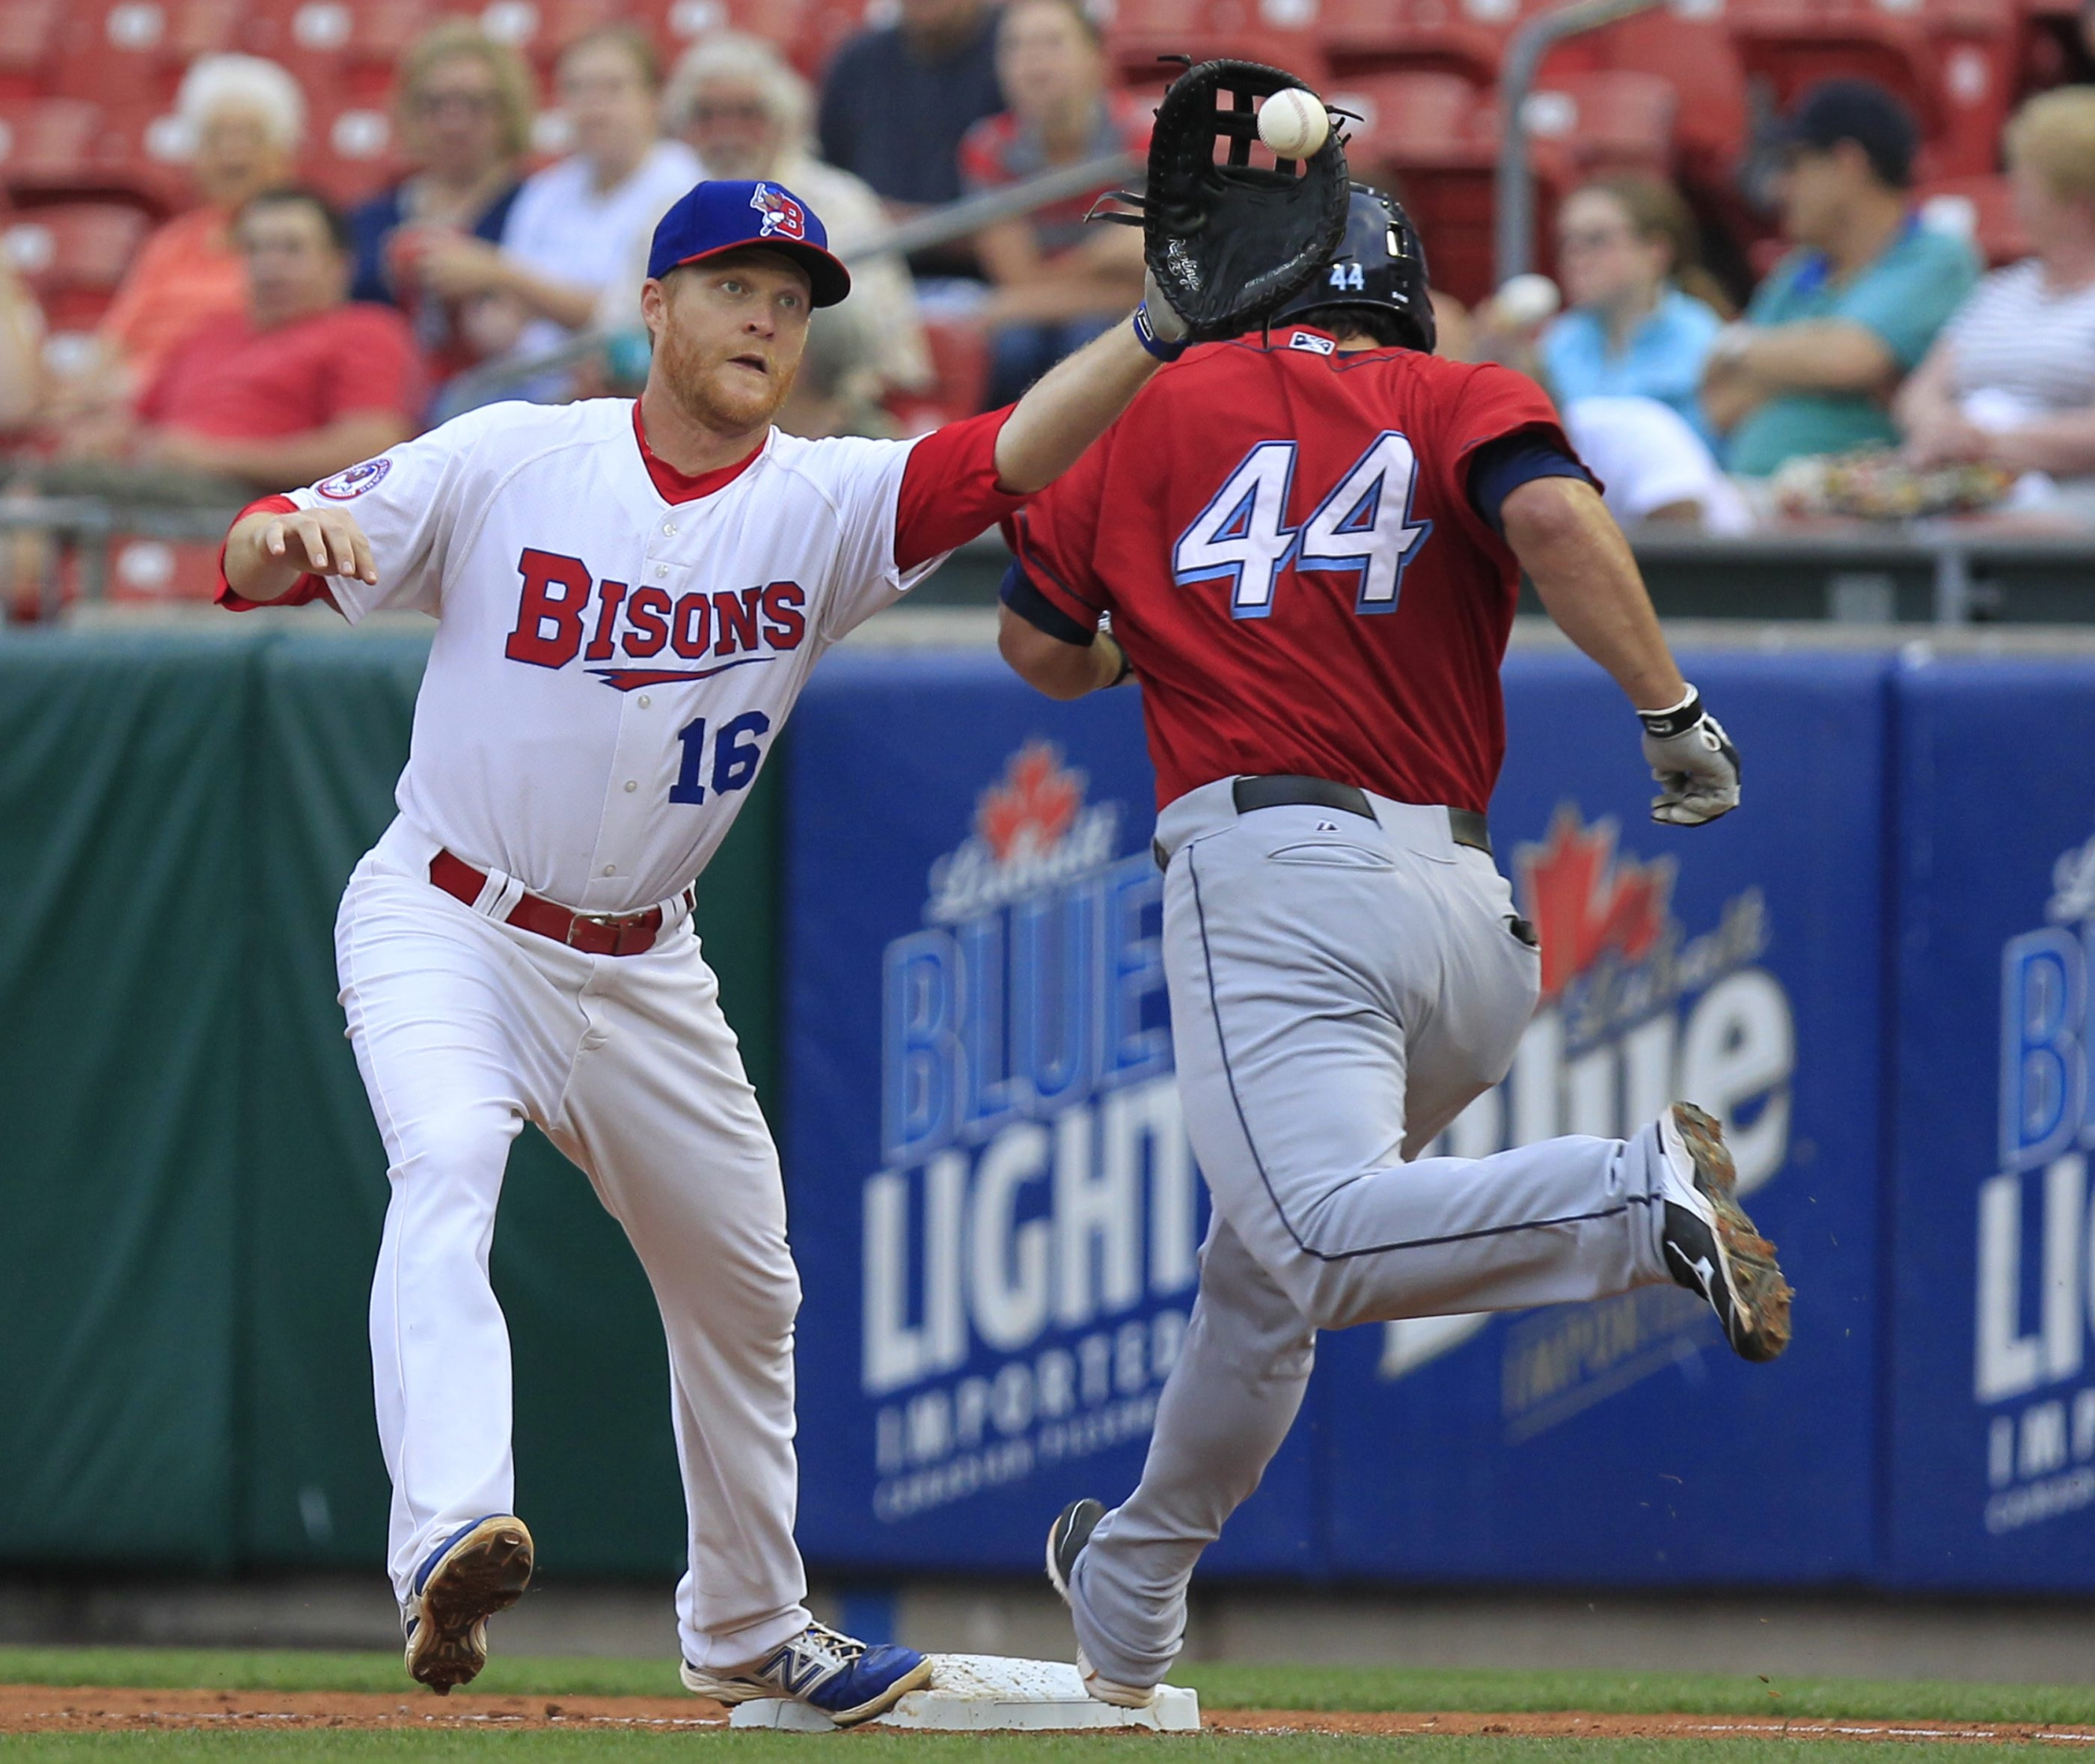 Bisons first baseman Dan Johnson stretches to tag out Clippers' Adam Abraham on Tuesday.